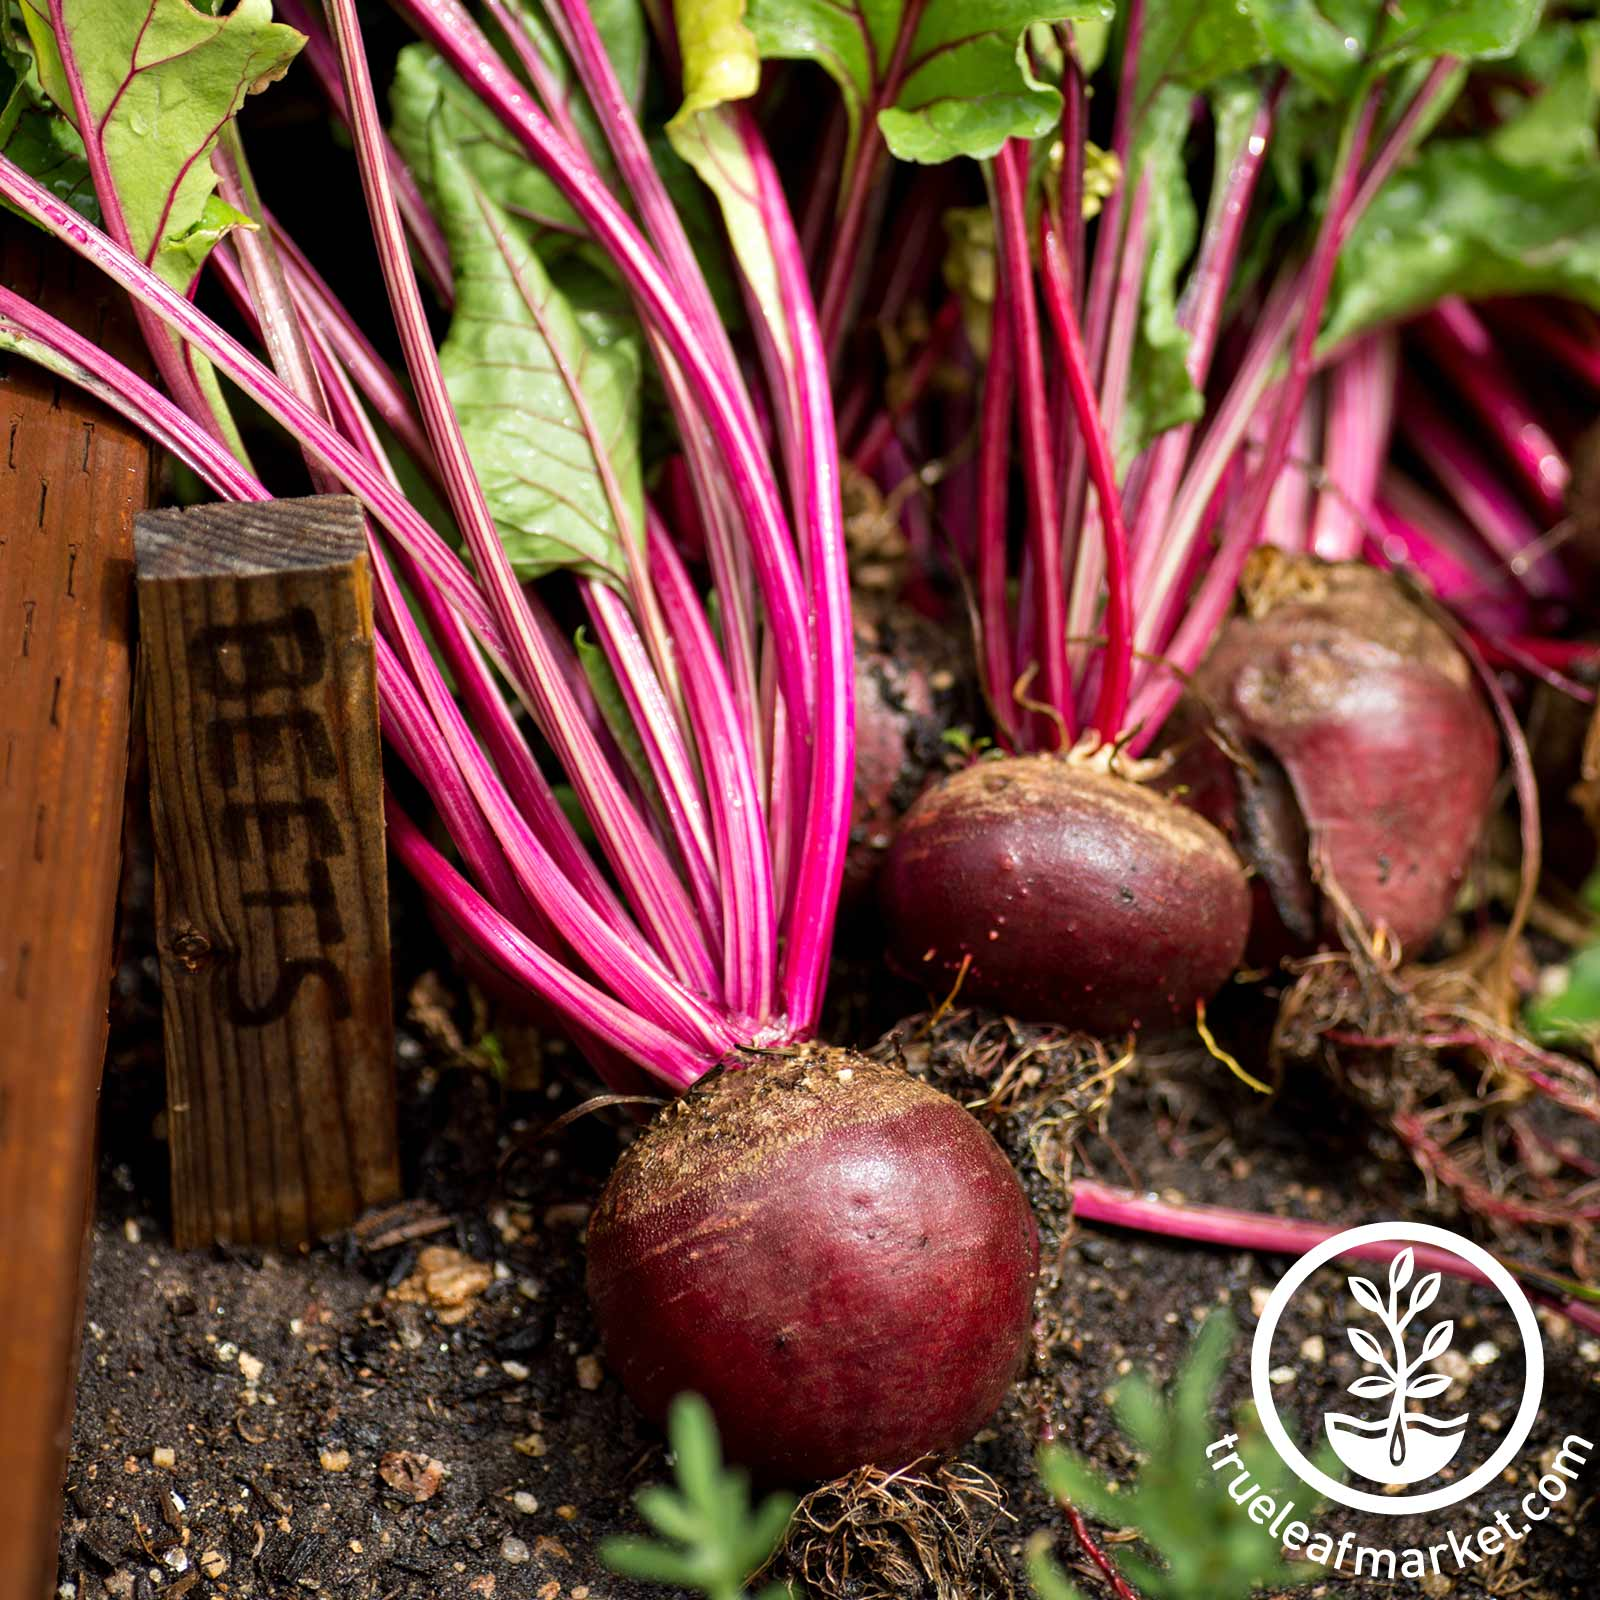 Beet Red Ace Hybrid Garden Seed